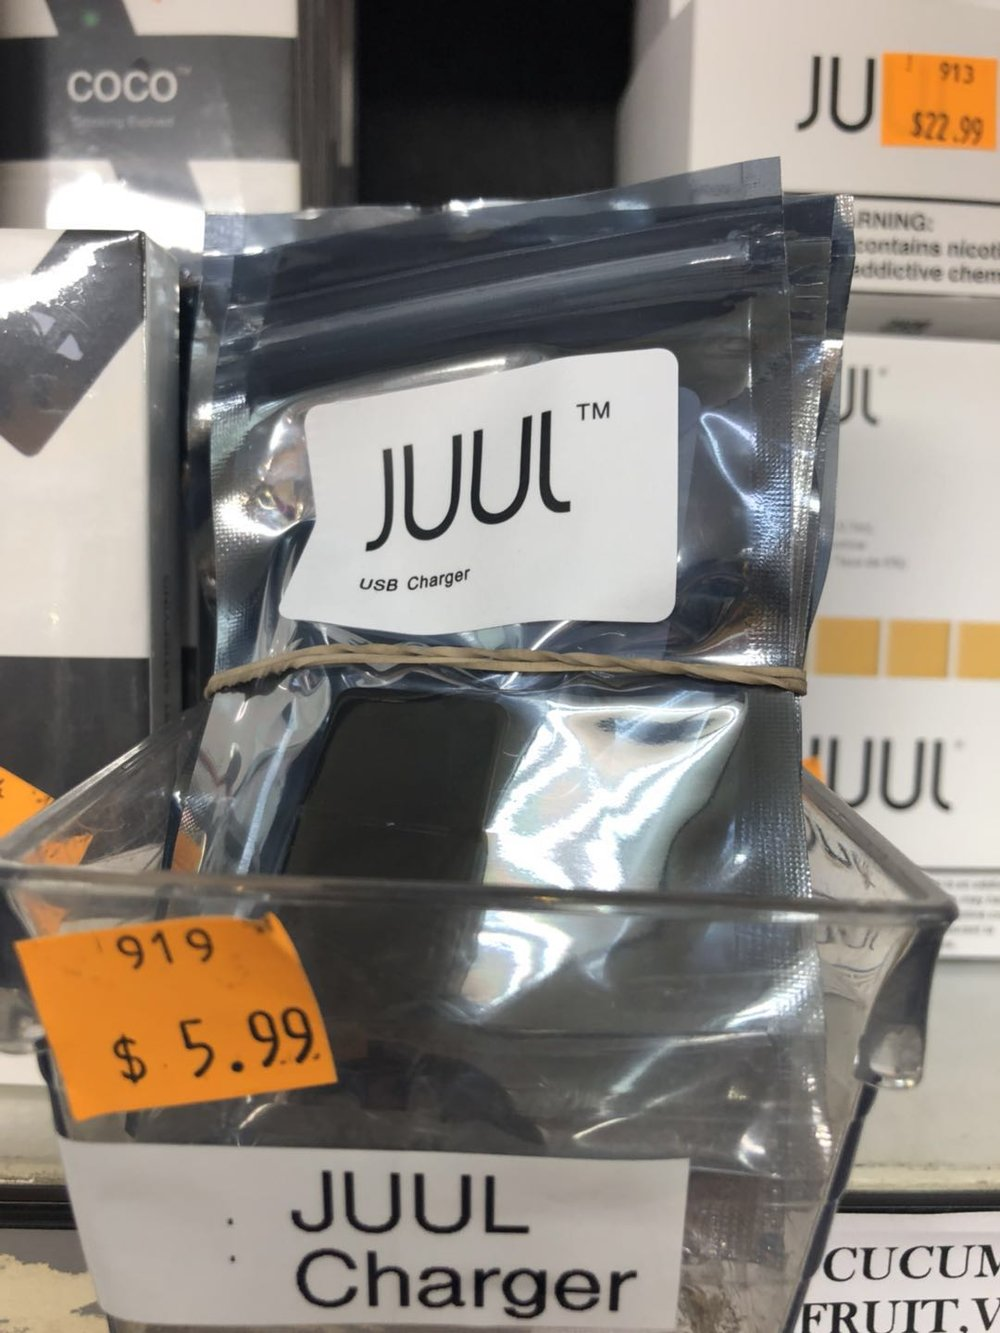 JUUL CHARGER.jpg